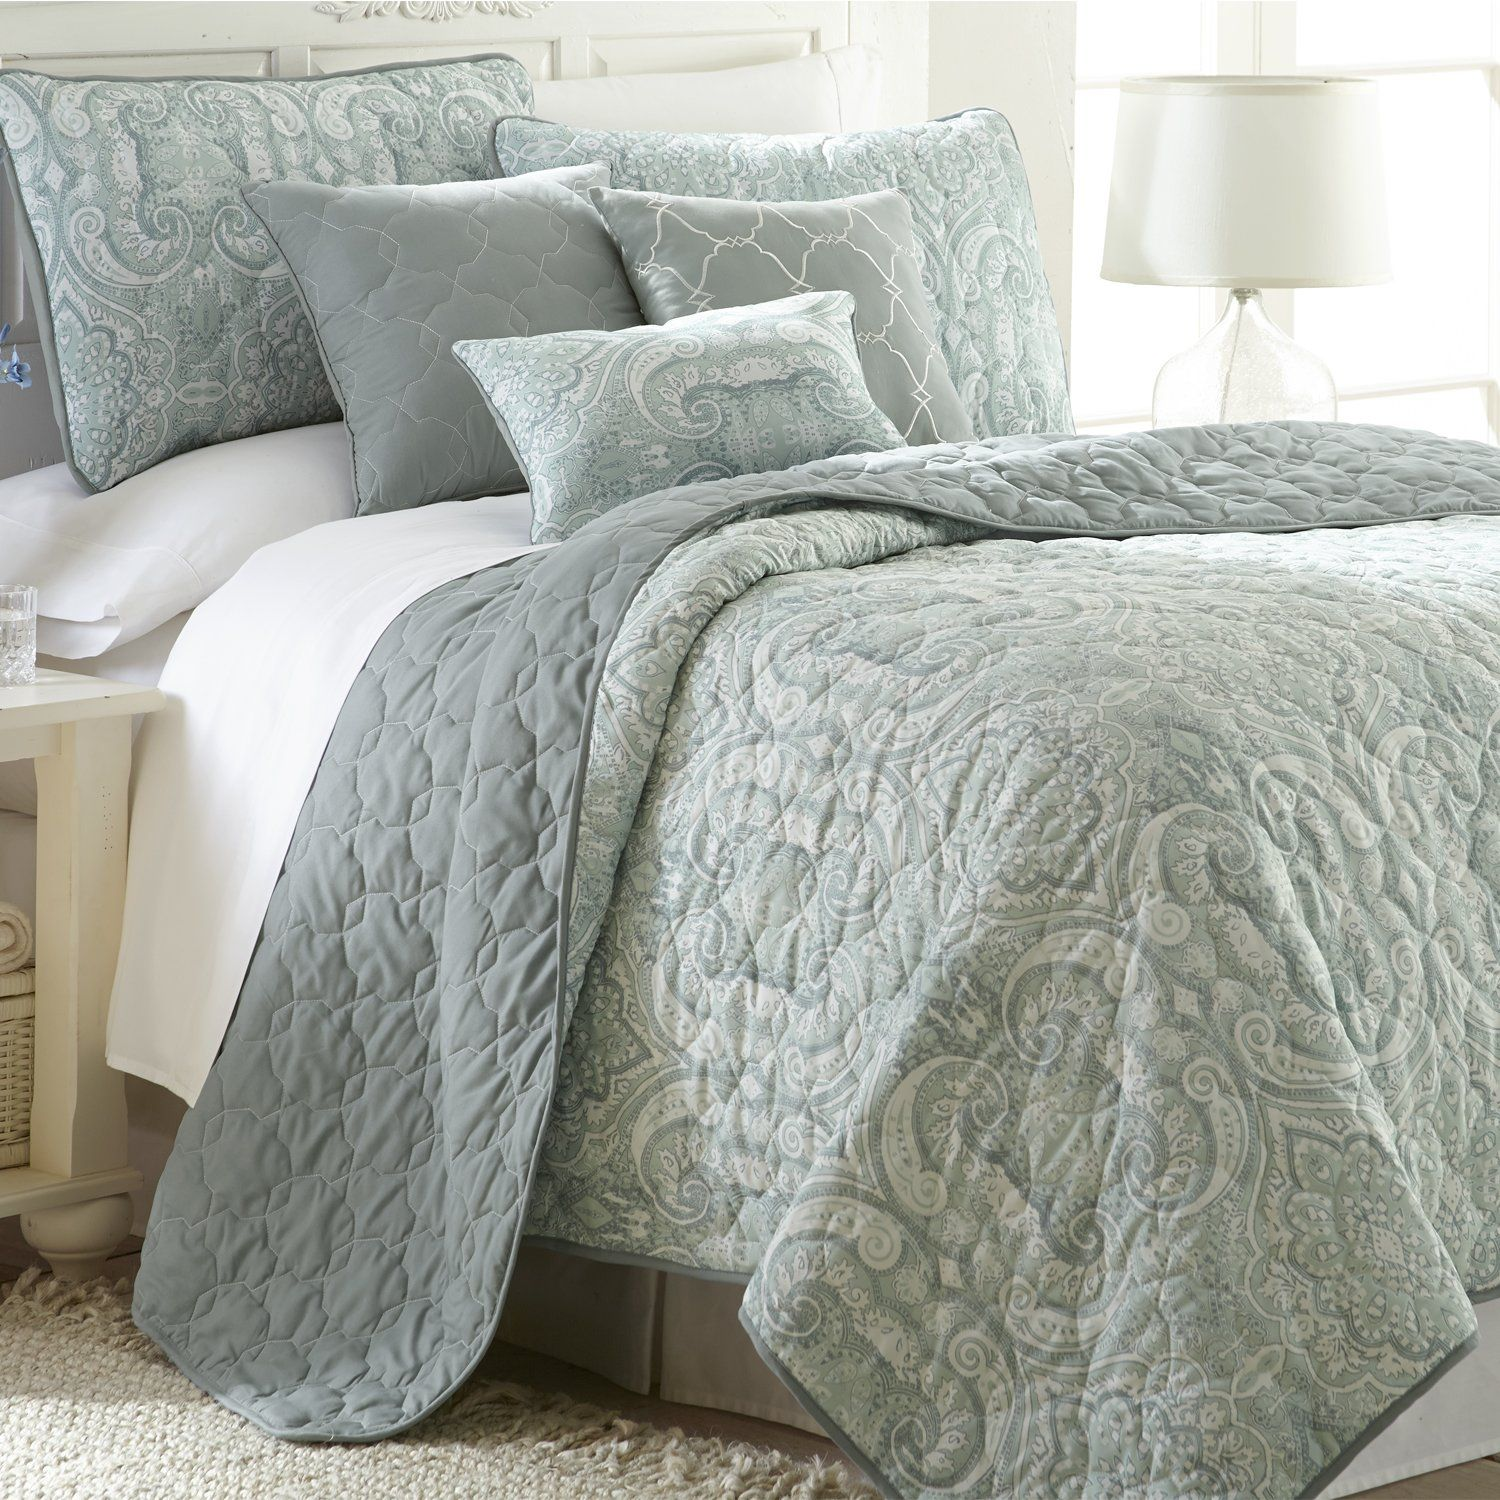 6 Piece Comforter Quilt Bed Set Bedding Luxury Over Sized Bali Queen King Size